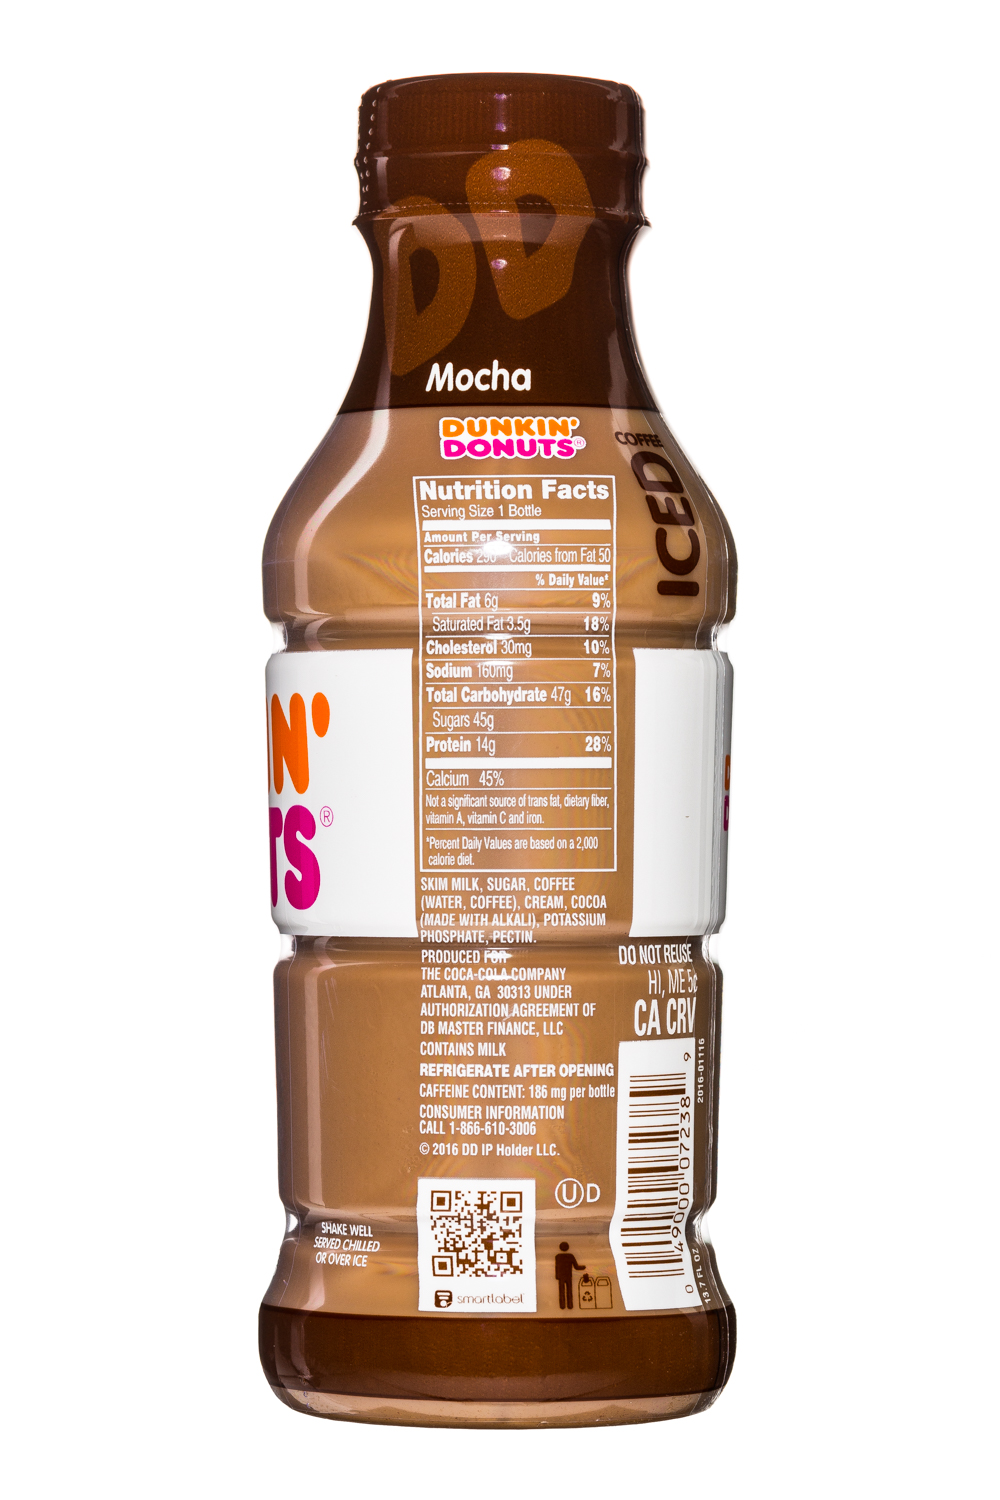 Dunkin Donuts Iced Coffee: DunkinDonuts-13oz-IcedCoffee-Mocha-Facts